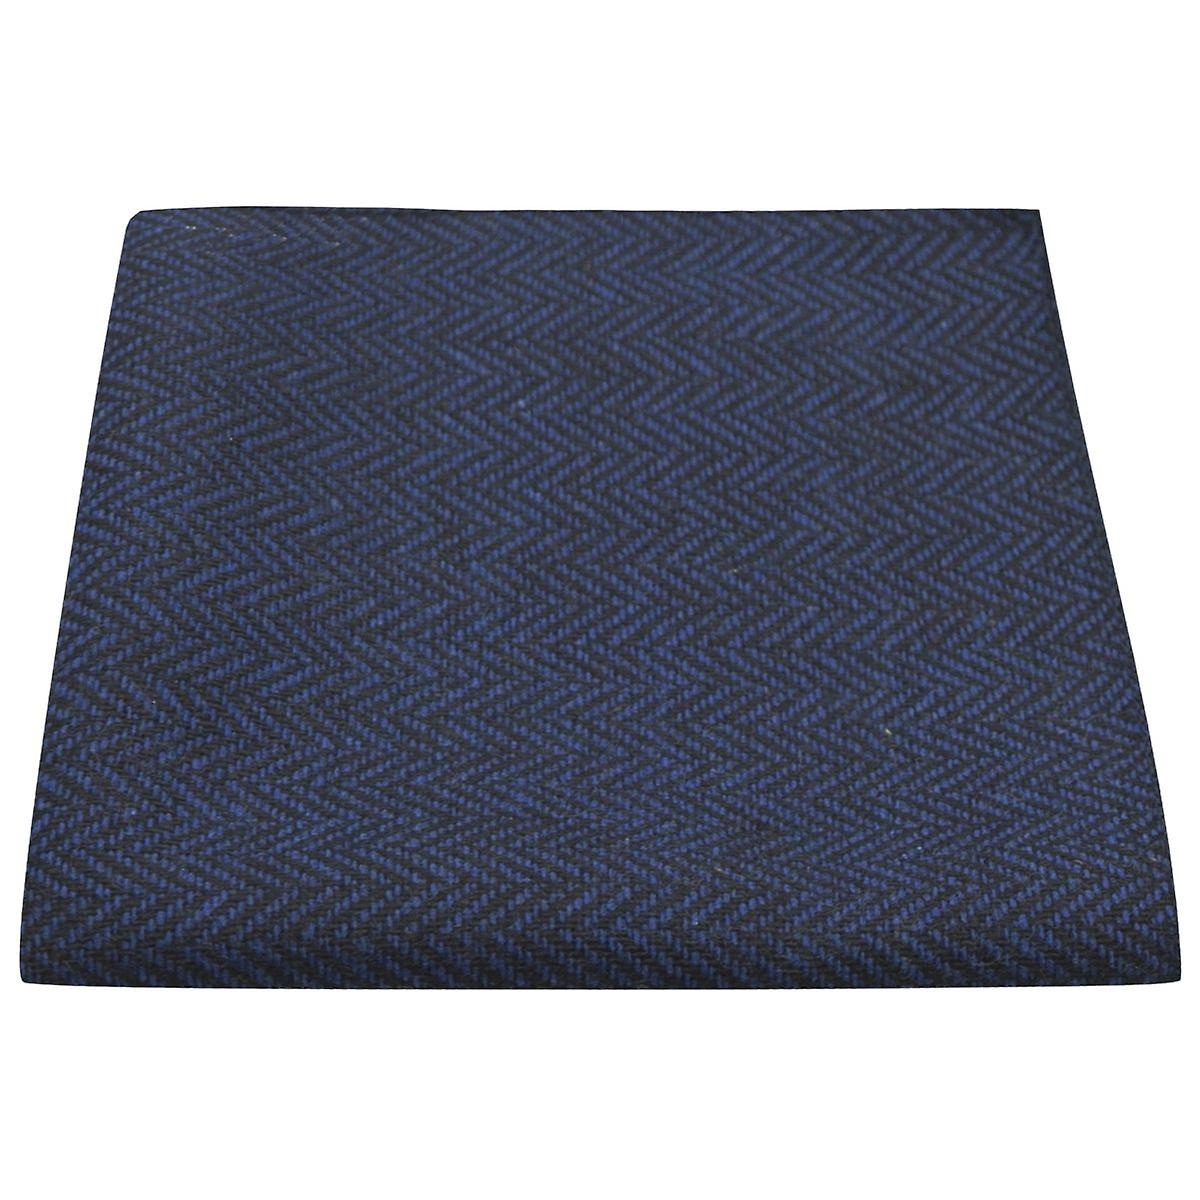 Midnight Blue & Black Herringbone Pocket Square, Handkerchief